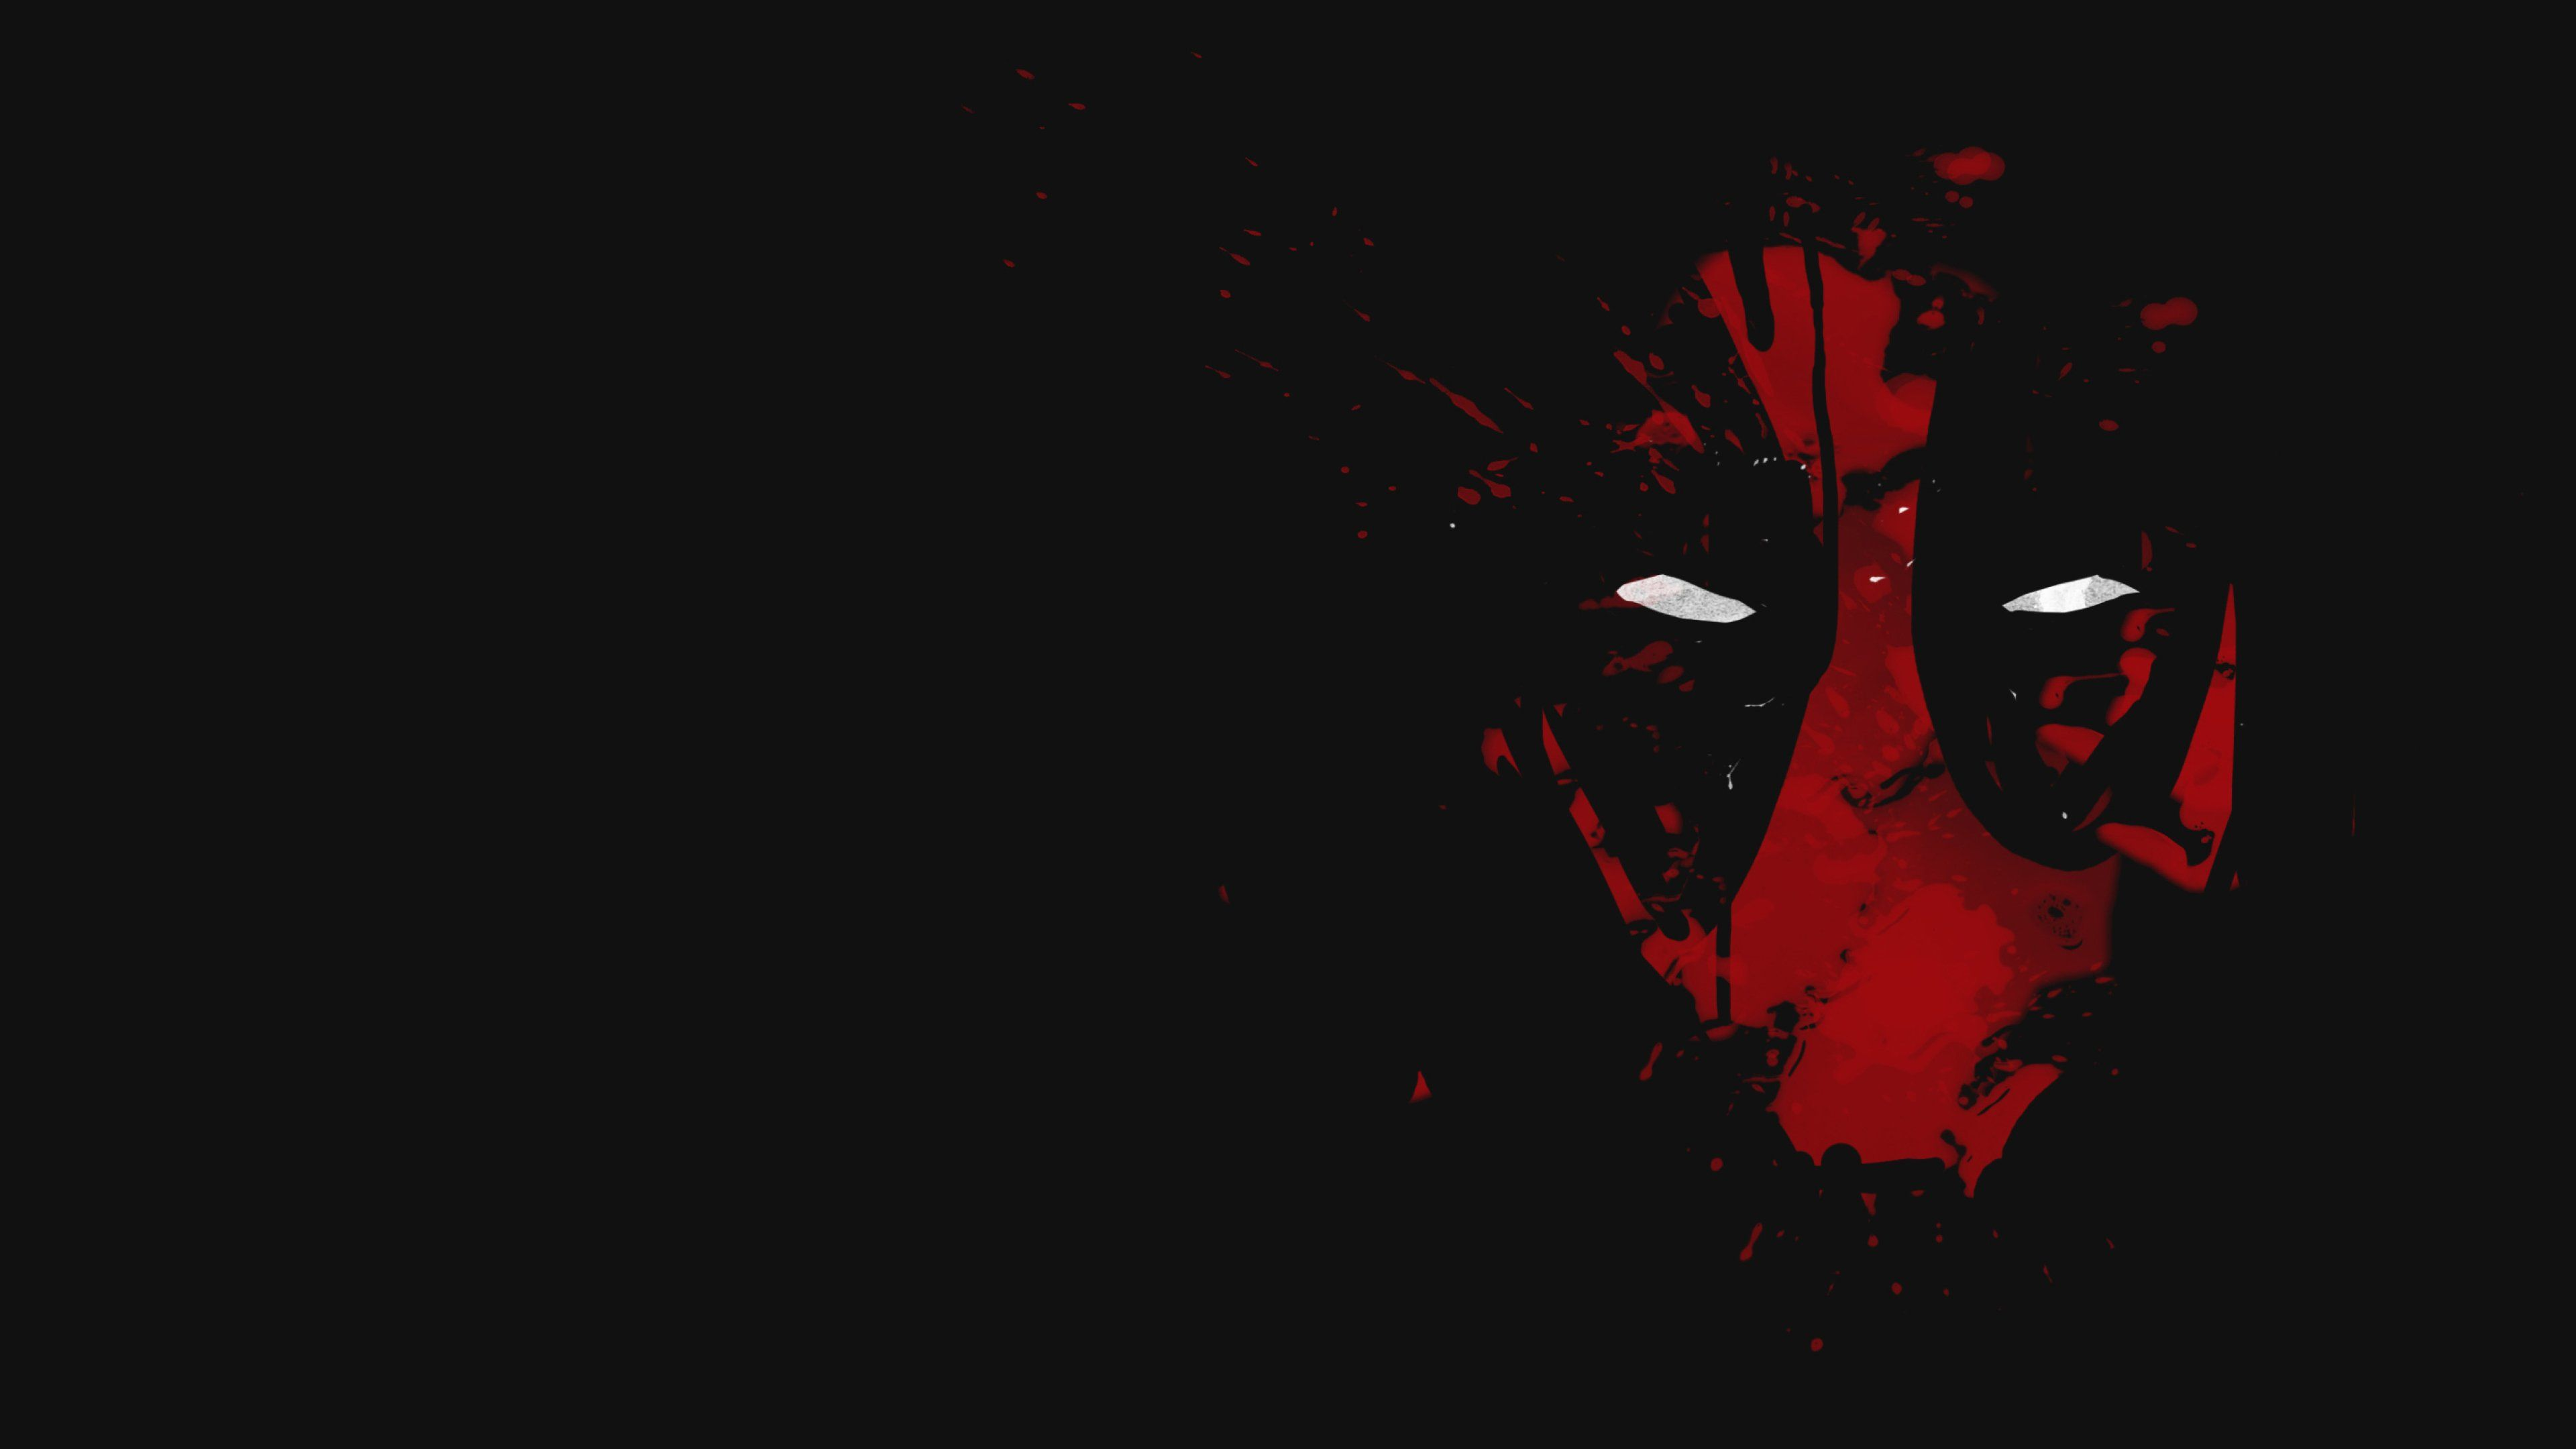 Deadpool Abstract 4k Superheroes Wallpapers Hd Wallpapers Digital Art Wall Deadpool Logo Wallpaper 4k Wallpapers For Pc Computer Wallpaper Desktop Wallpapers